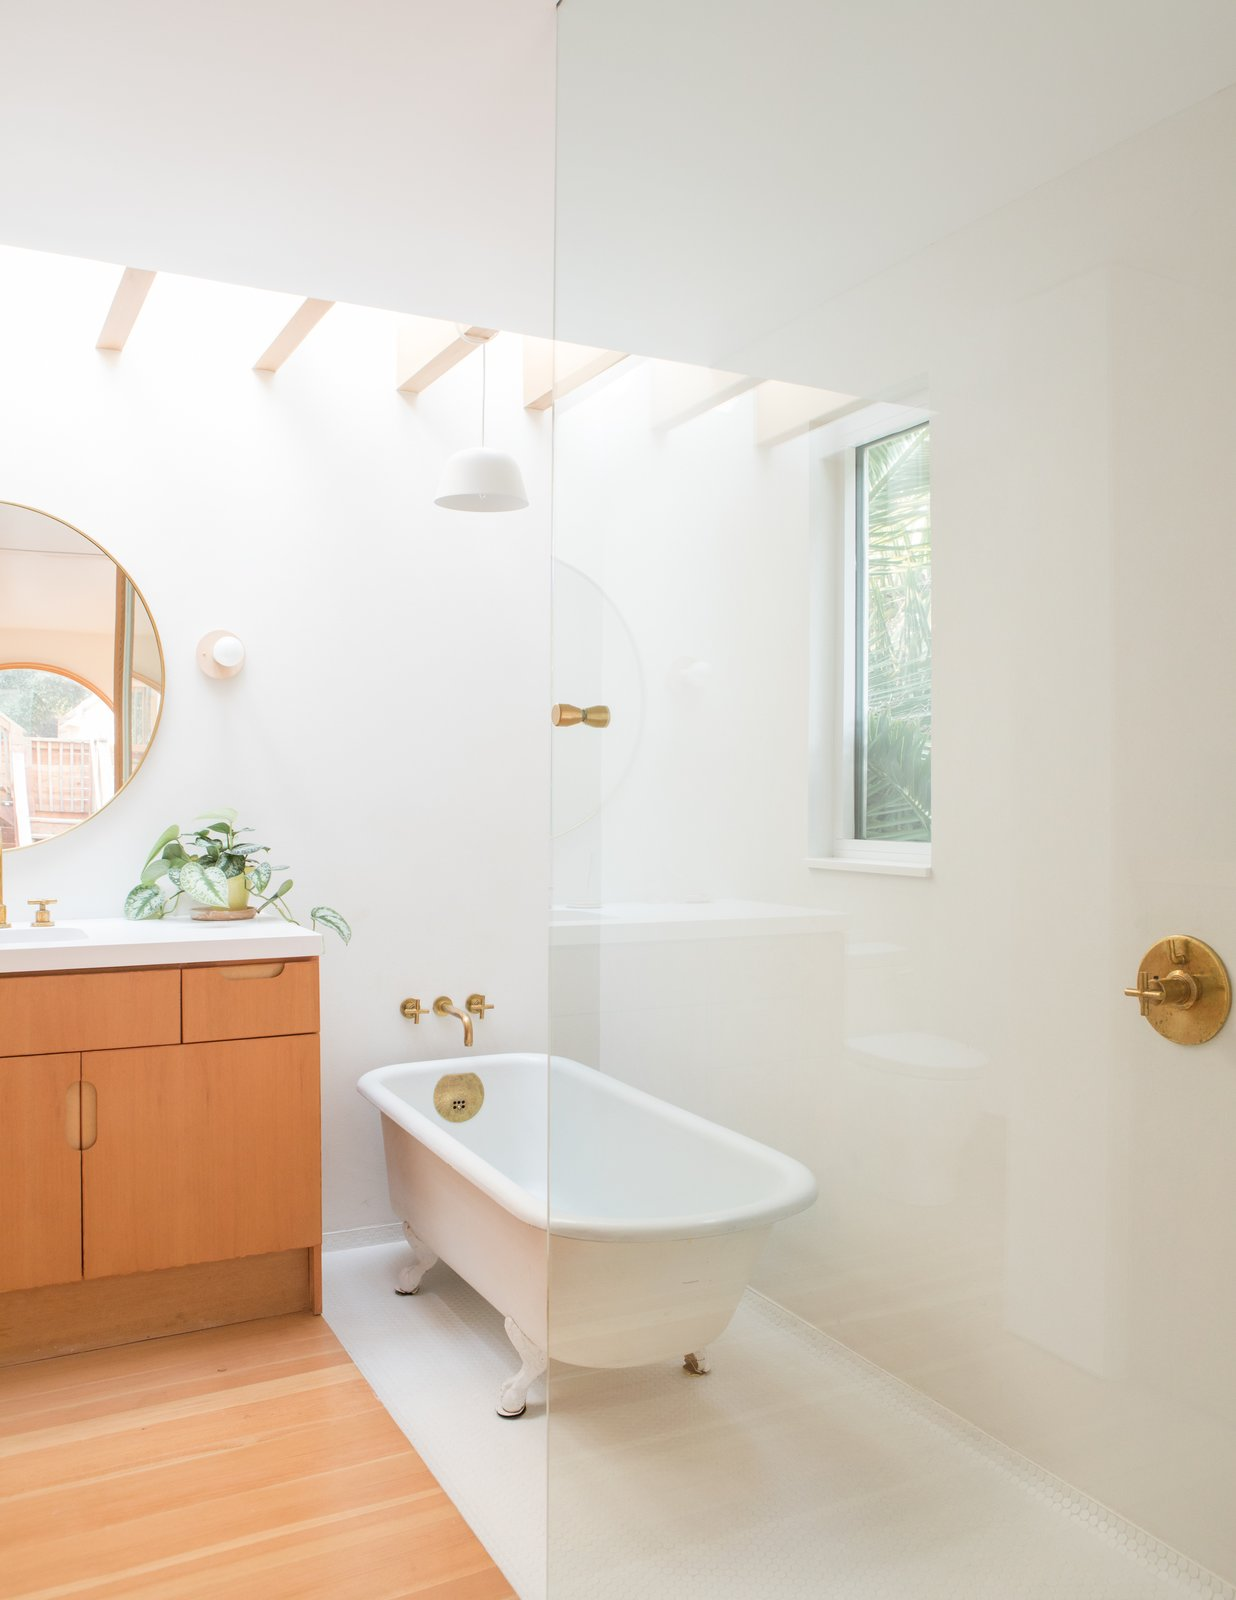 Carriage House by Medium Plenty glass-partitioned bathroom with open shower